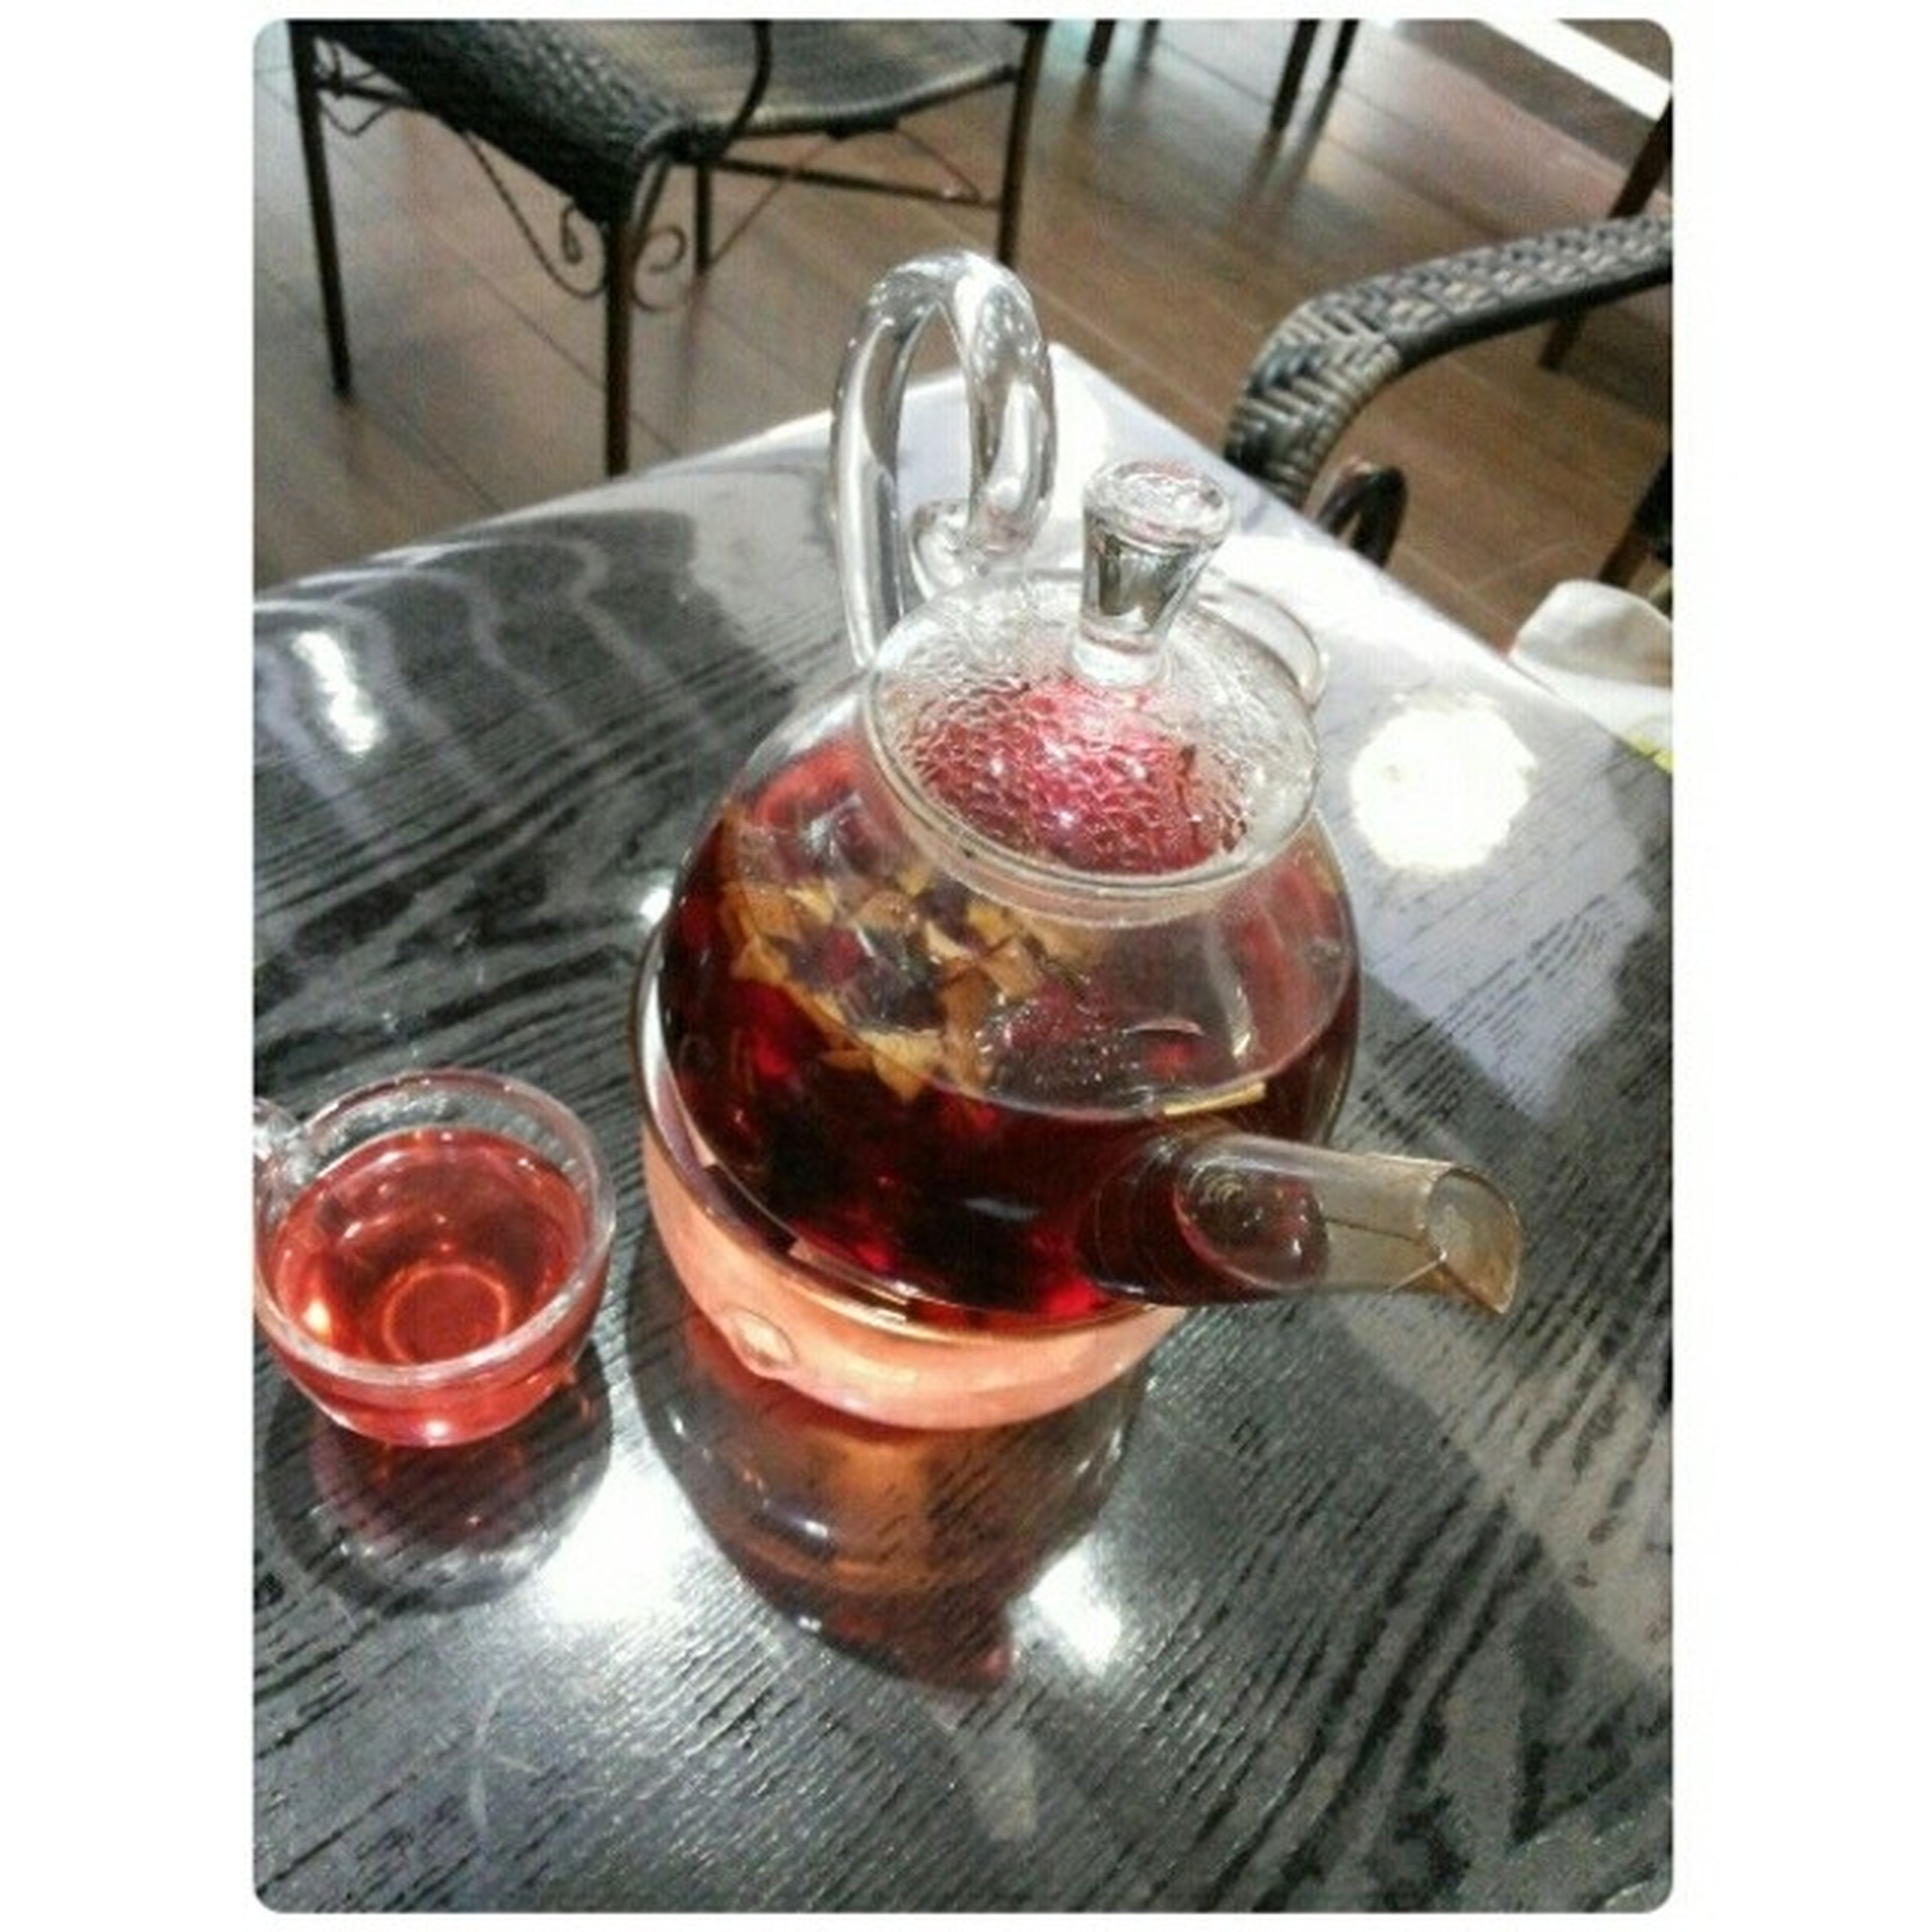 transfer print, indoors, food and drink, auto post production filter, table, freshness, still life, drinking glass, drink, close-up, glass - material, refreshment, high angle view, glass, red, transparent, spoon, no people, food, sweet food